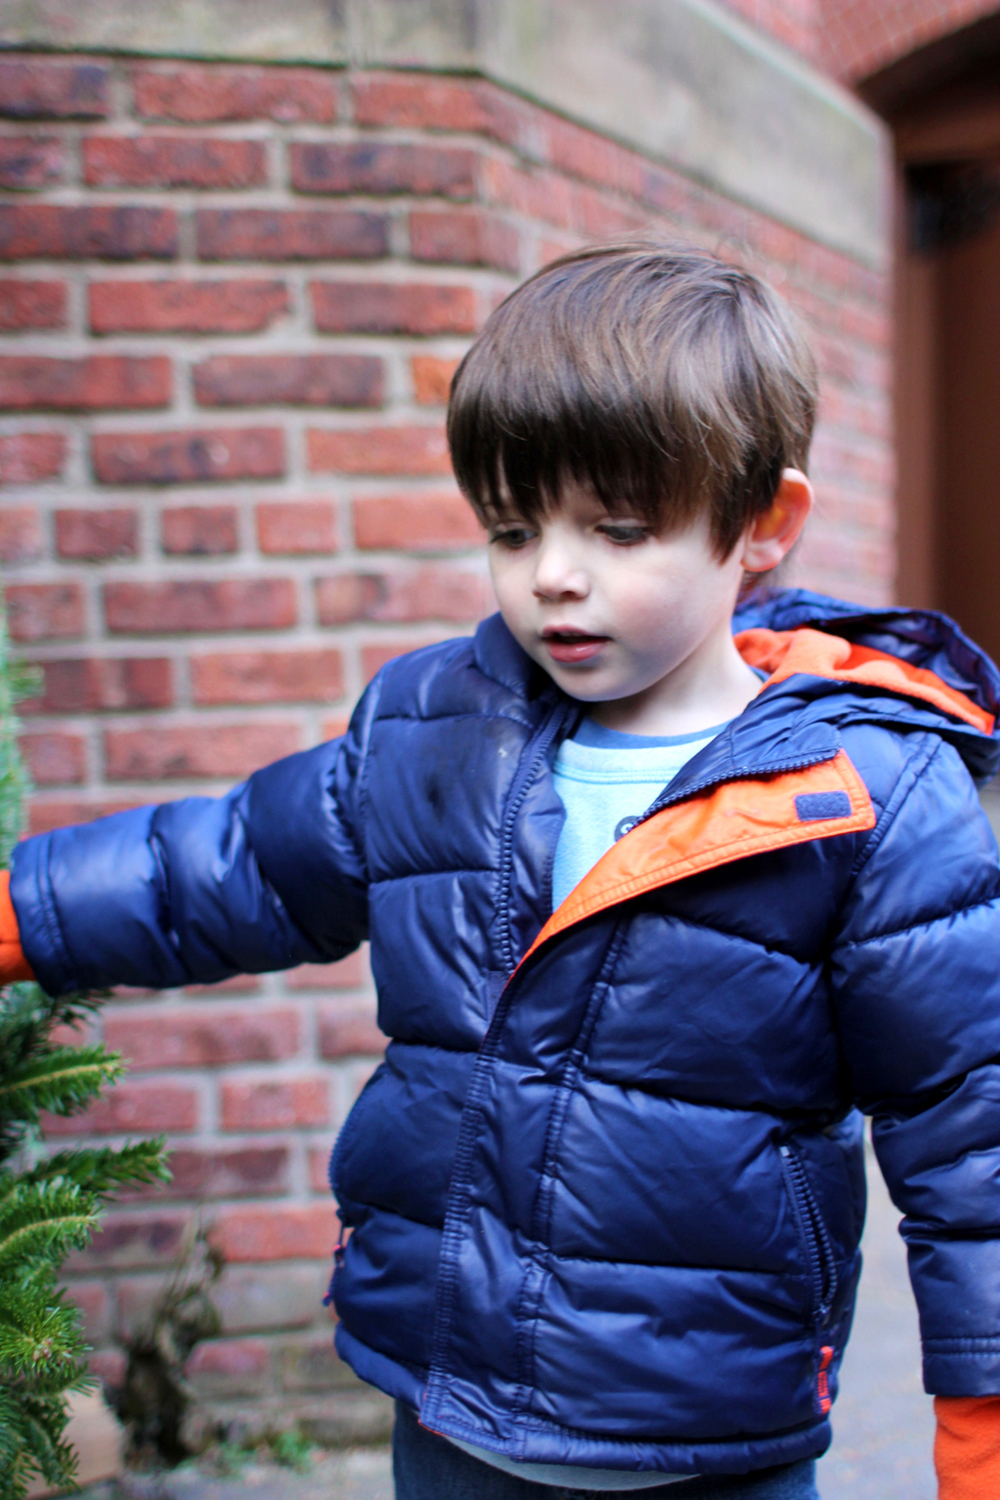 Picking out a tree isn't easy, but Everett found the best one. And it just so happened to also be the biggest.